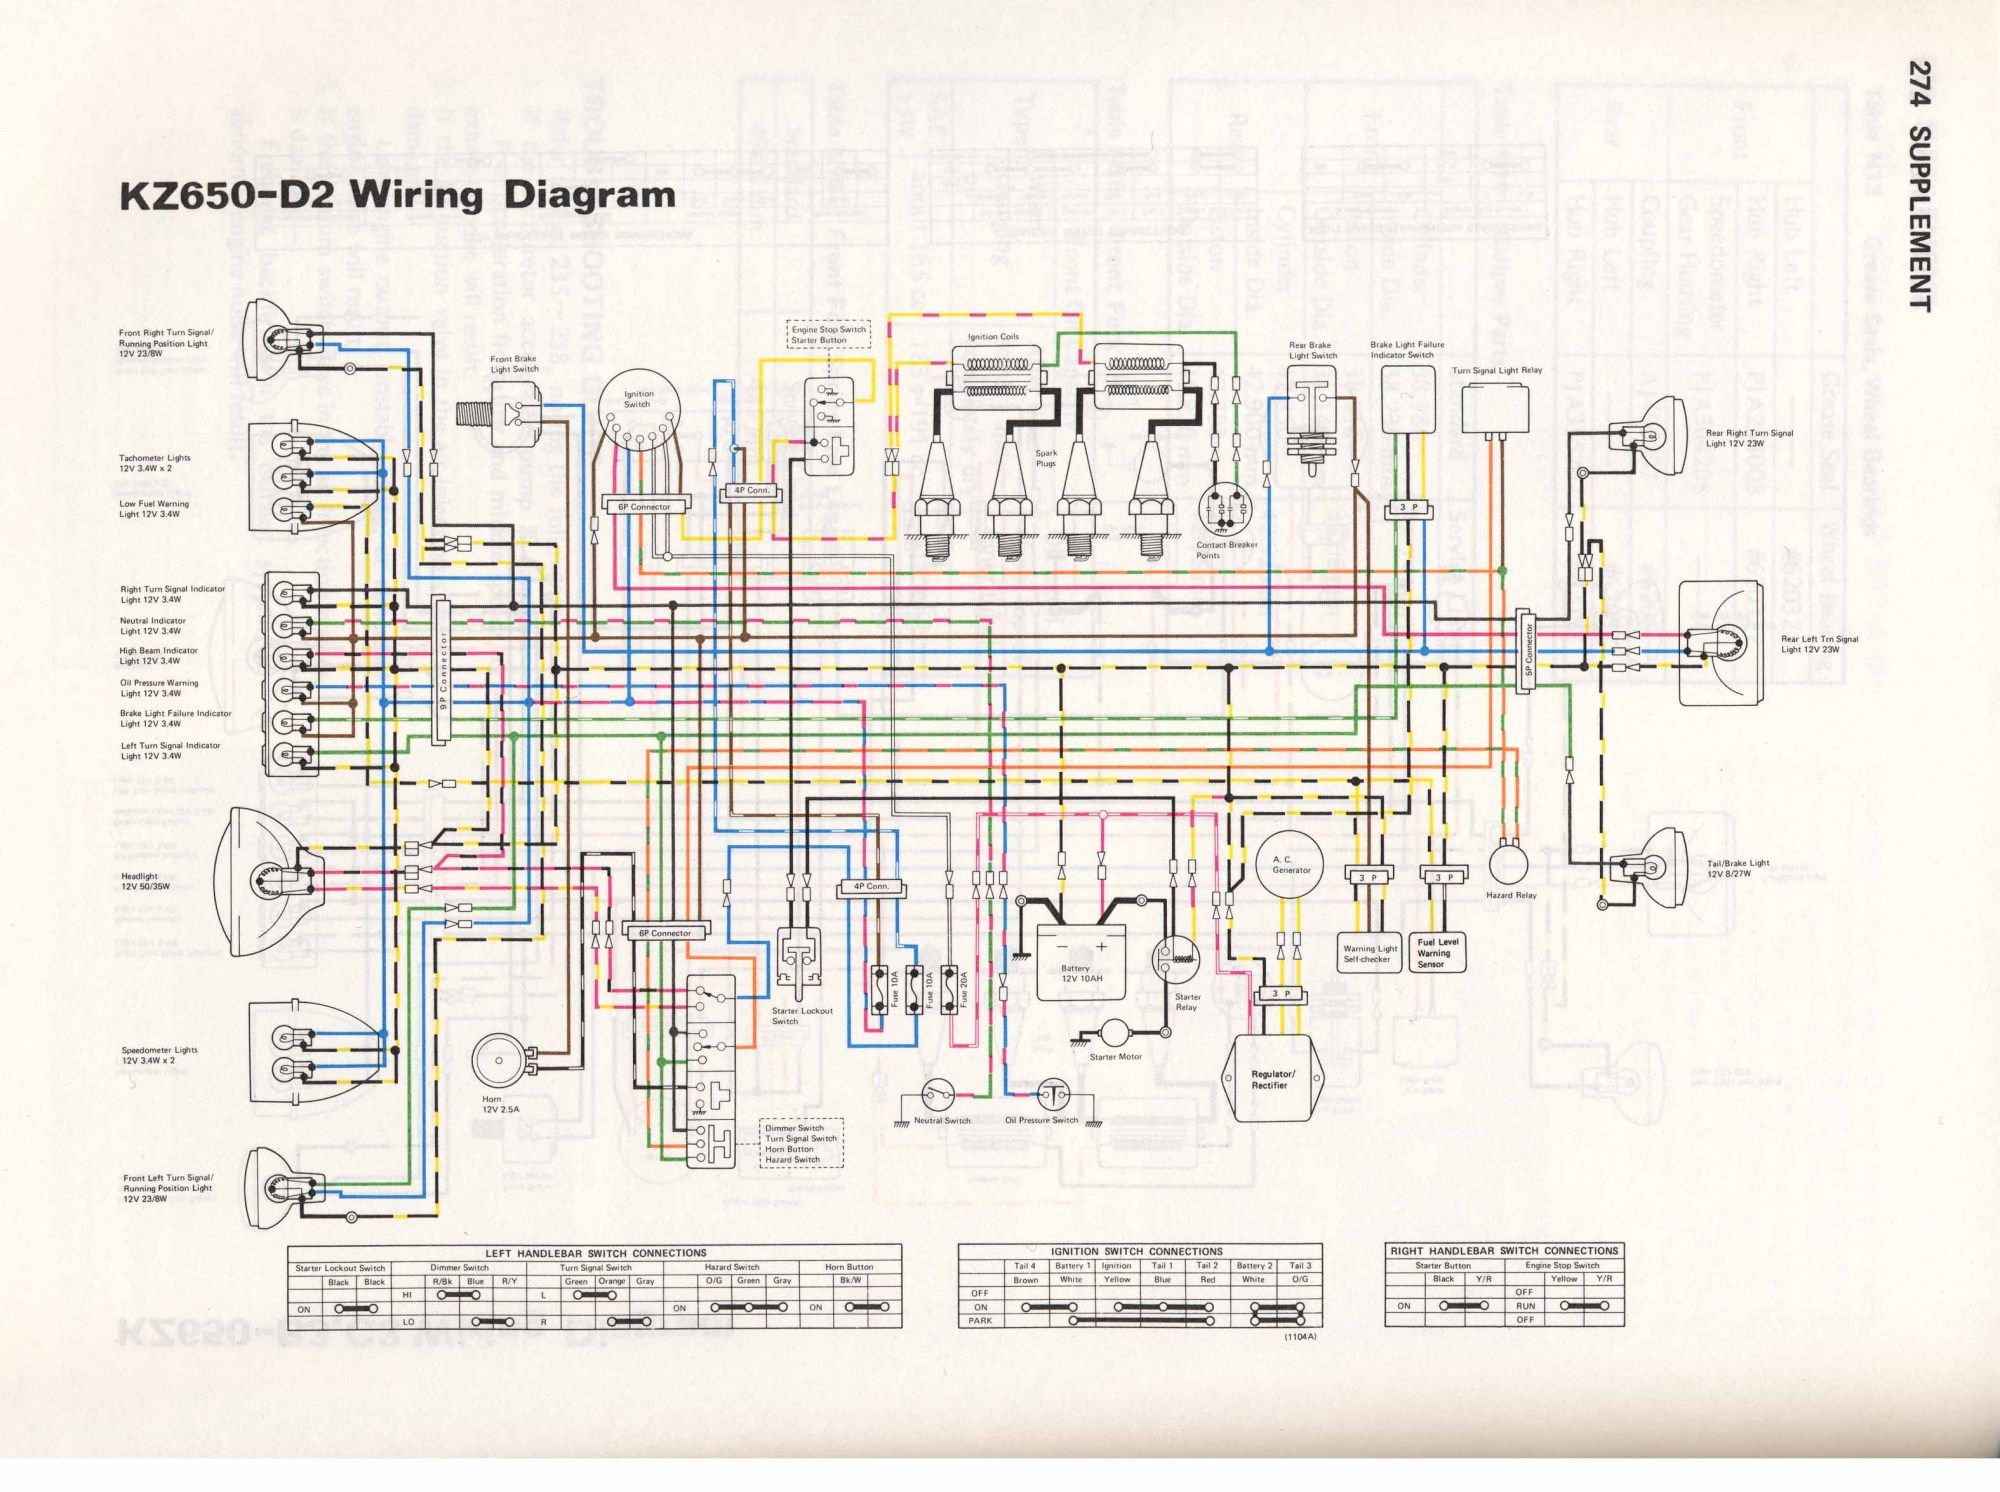 hight resolution of 1982 kz650h wiring diagram wiring diagram rowskz650 info wiring diagrams 1982 kz650h wiring diagram